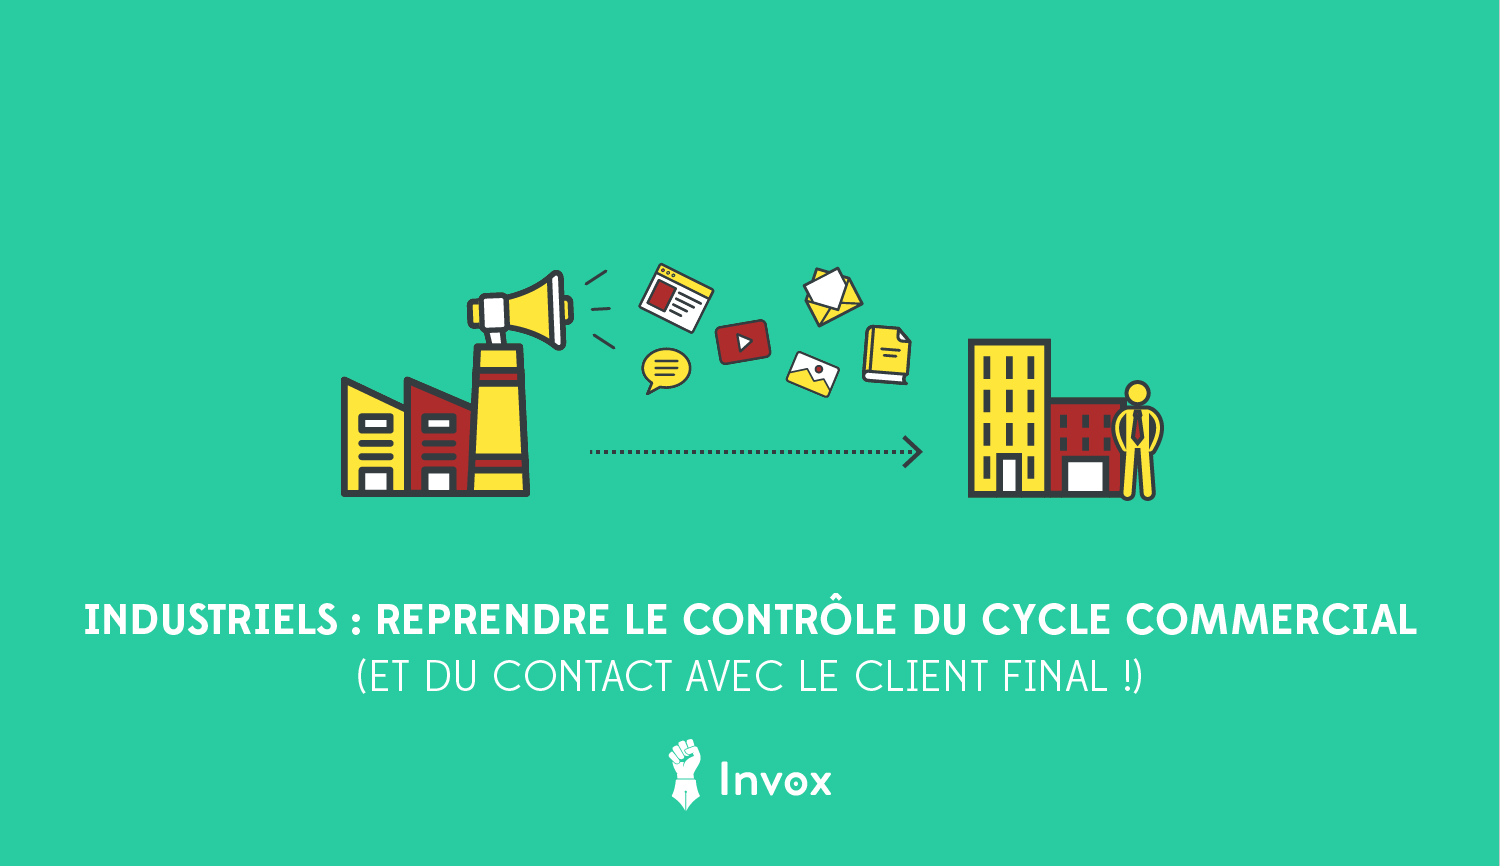 marketing B2B industriels clients finaux cycle commercial